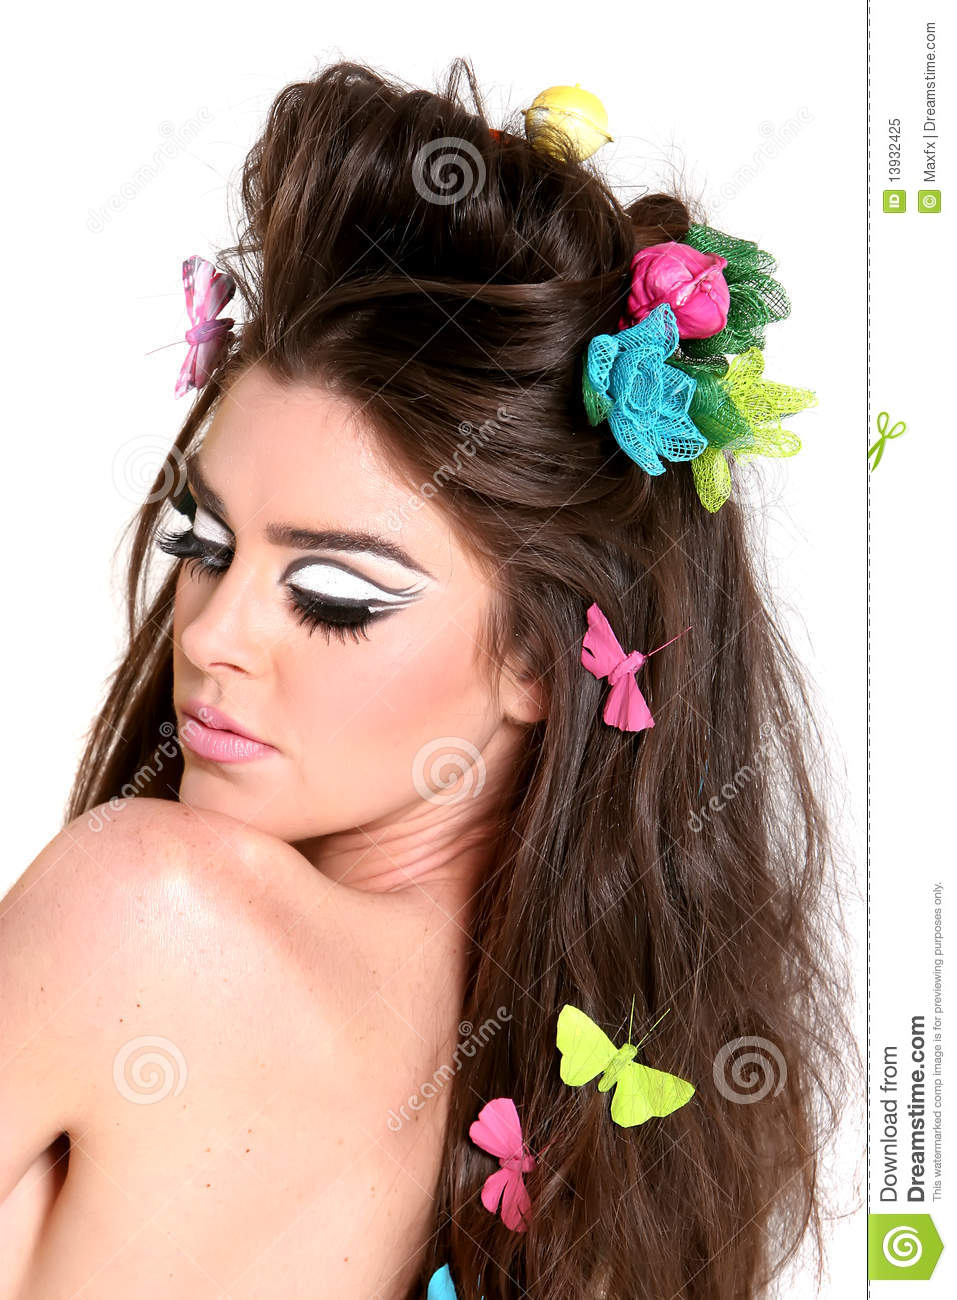 Young Woman With High Fashion Makeup And Hairstyle Stock